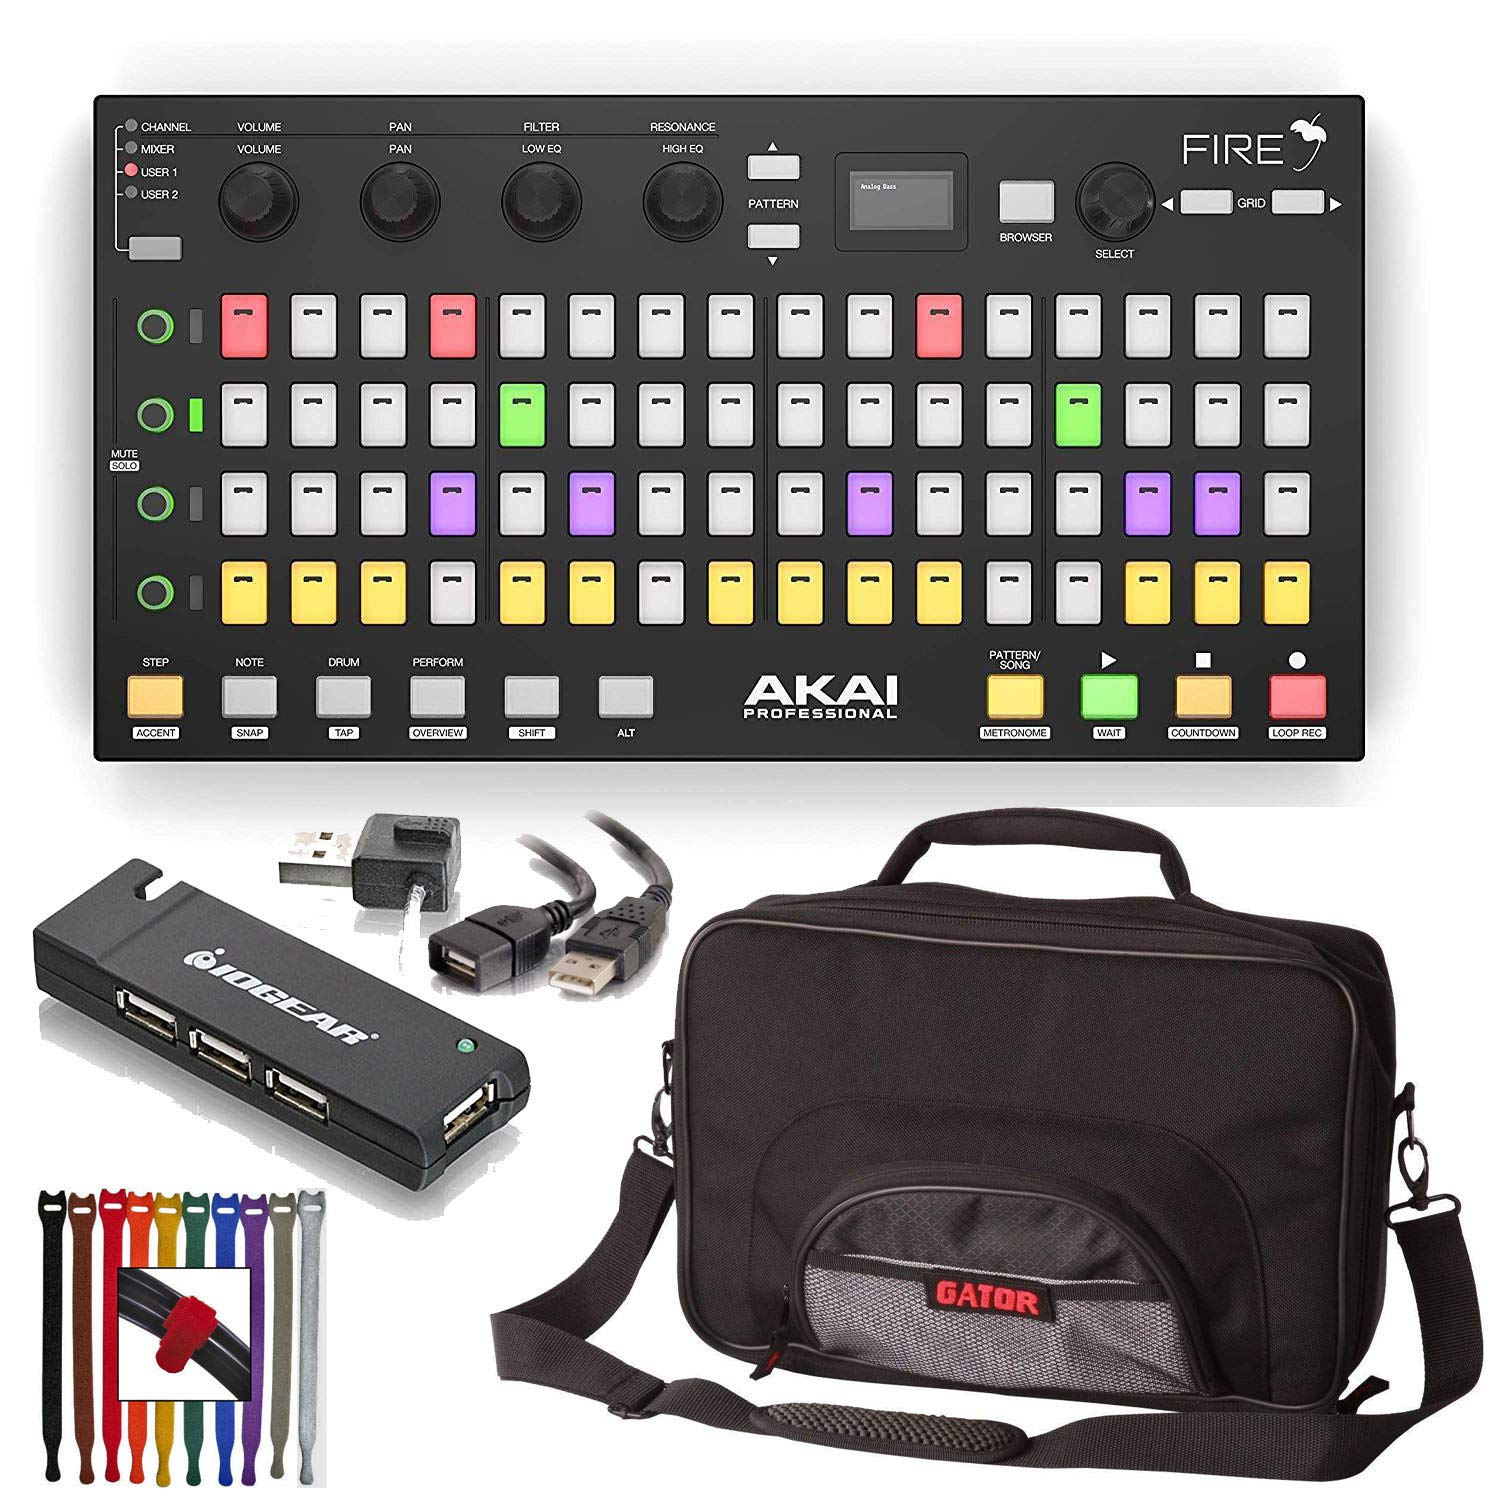 Akai Professional Fire FL Studio Performance Controller with FL Studio Fruity Edition Software + Gator Padded Bag + 4-Port USB 2.0 Hub + High Speed USB Extension Cable & Colored Straps by Akai